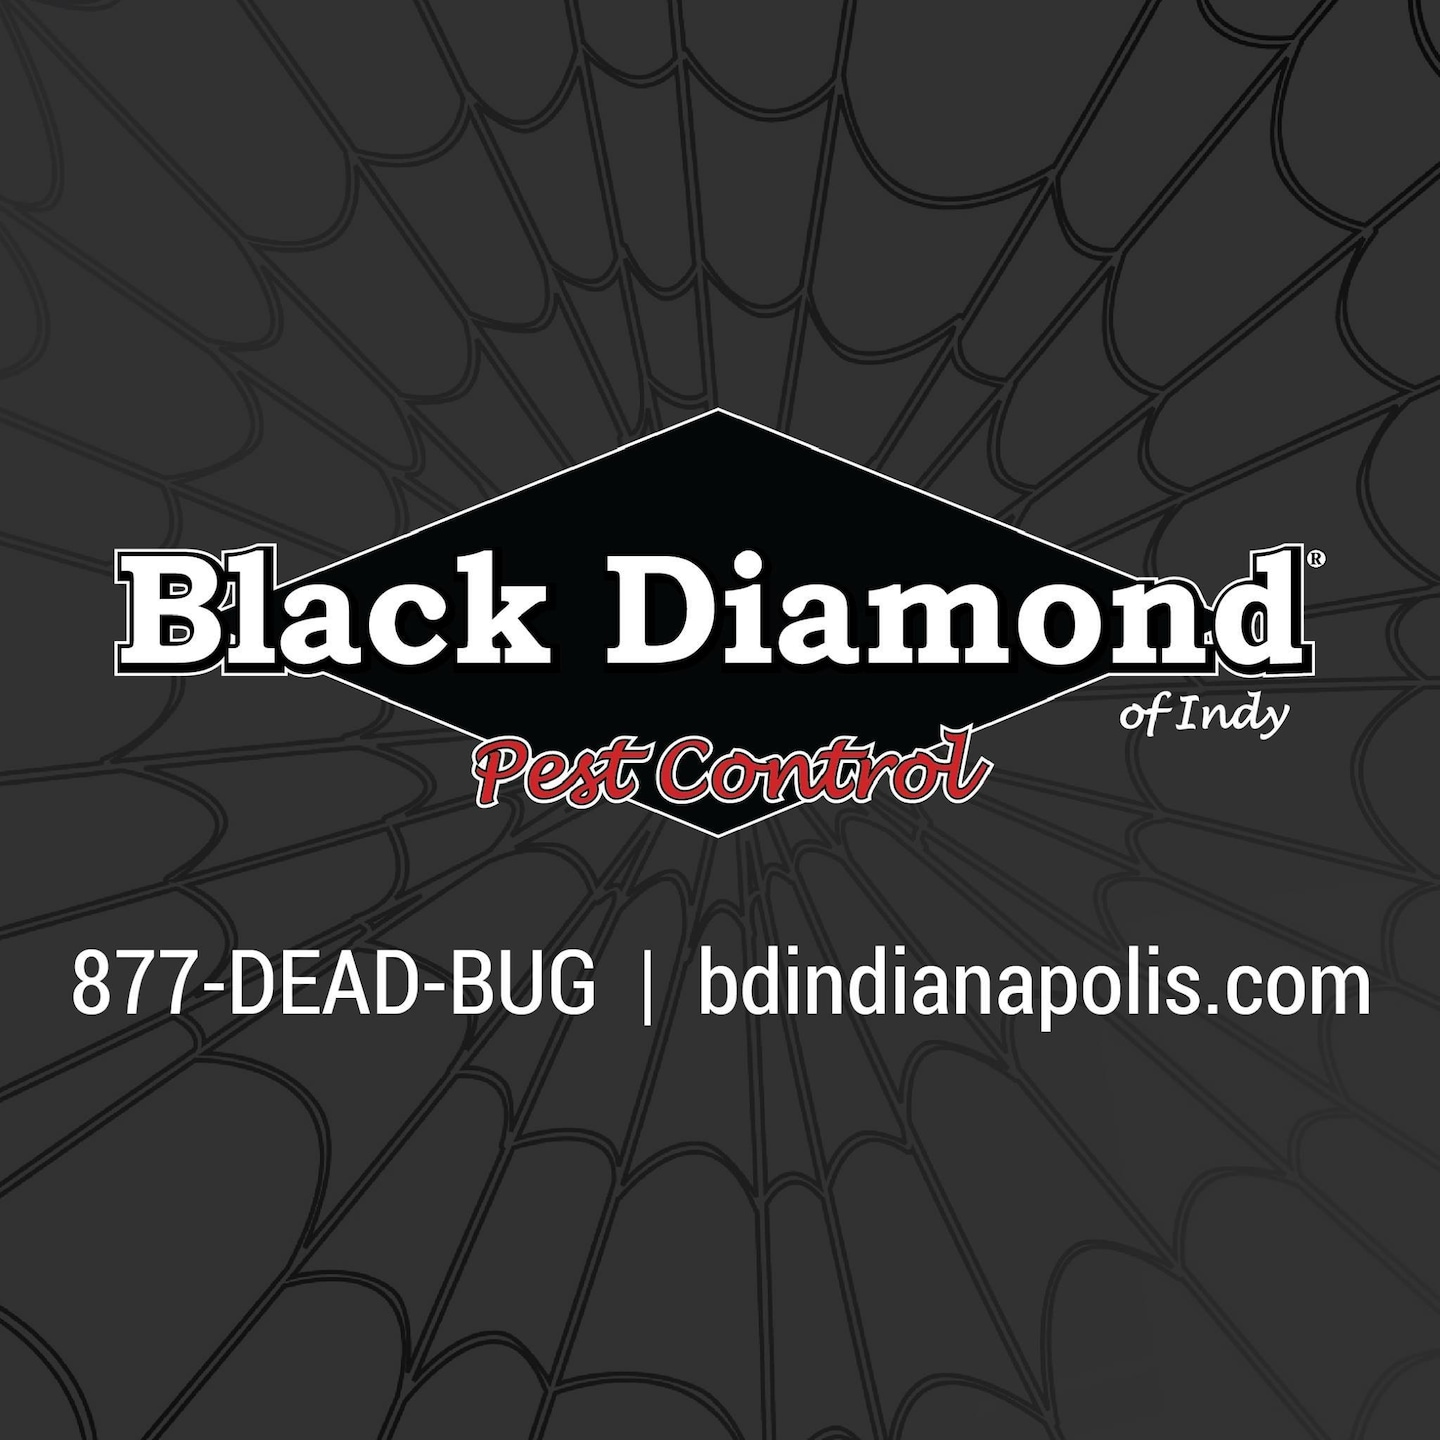 Black Diamond of Indianapolis